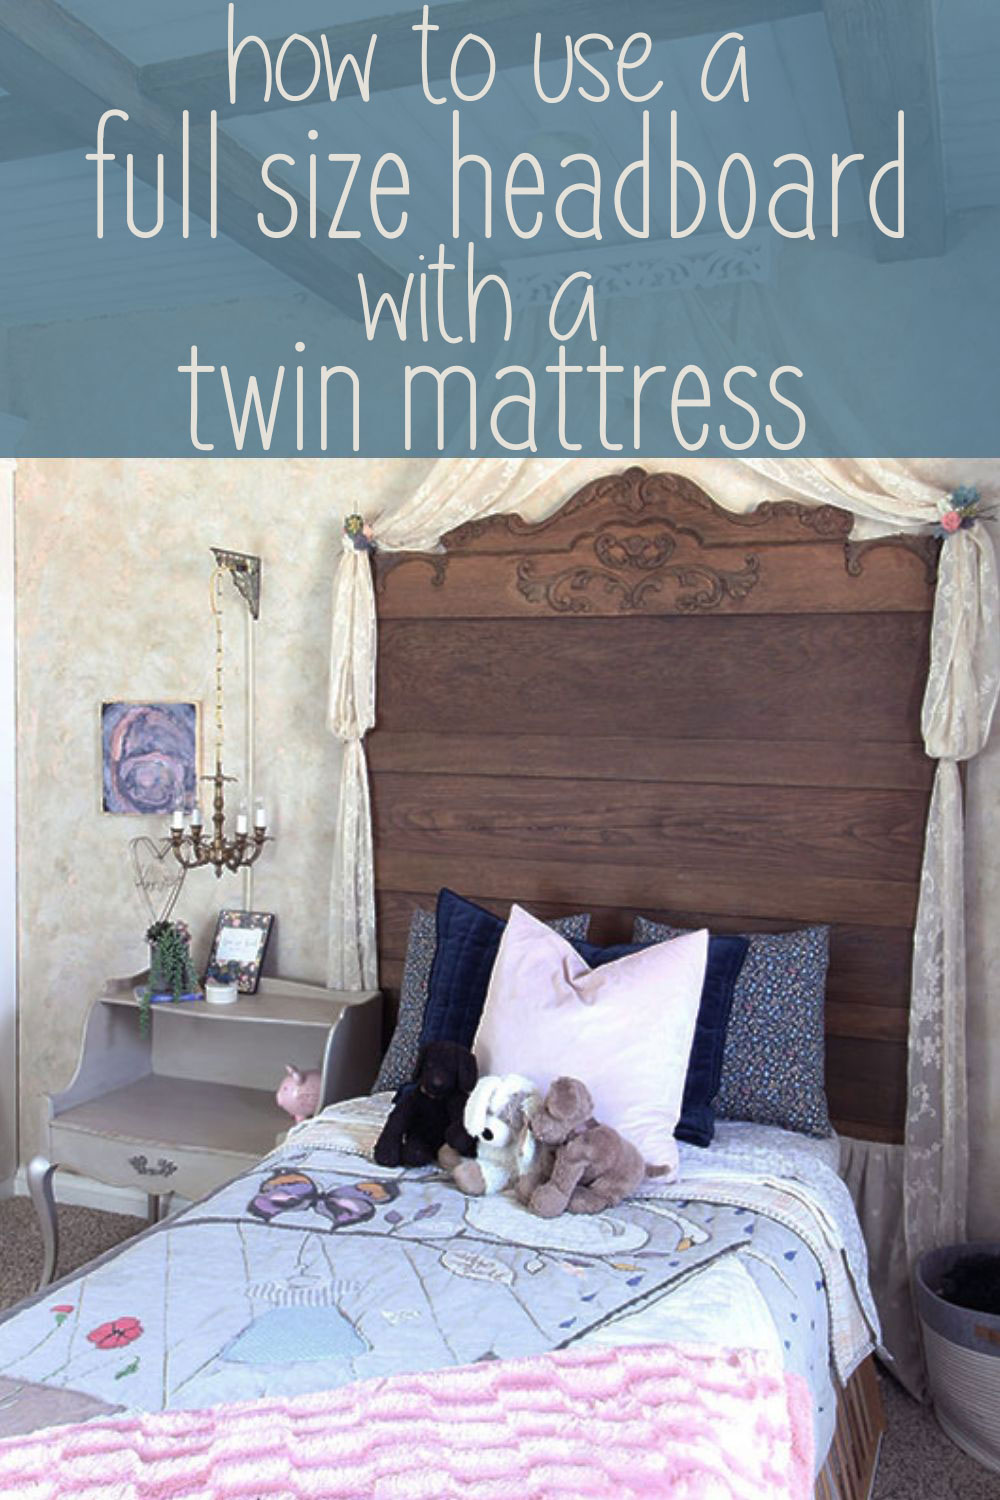 full headboard with a twin mattress